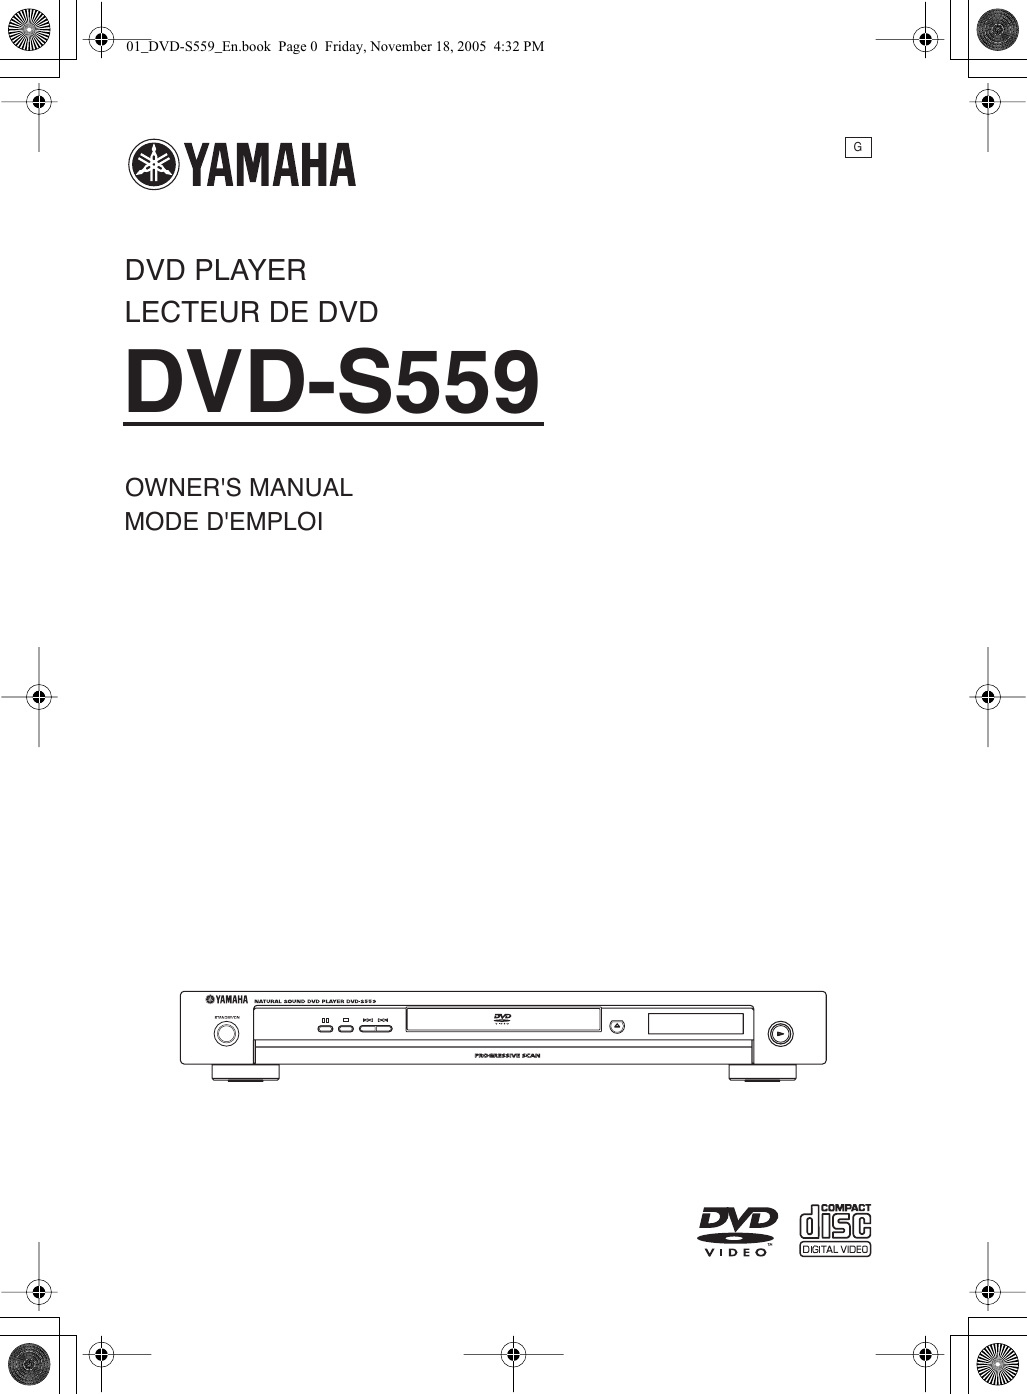 Yamaha Dvd S559 Owners Manual Schematic Of Current Power Supply For Double Laser From Dvdrw Burner